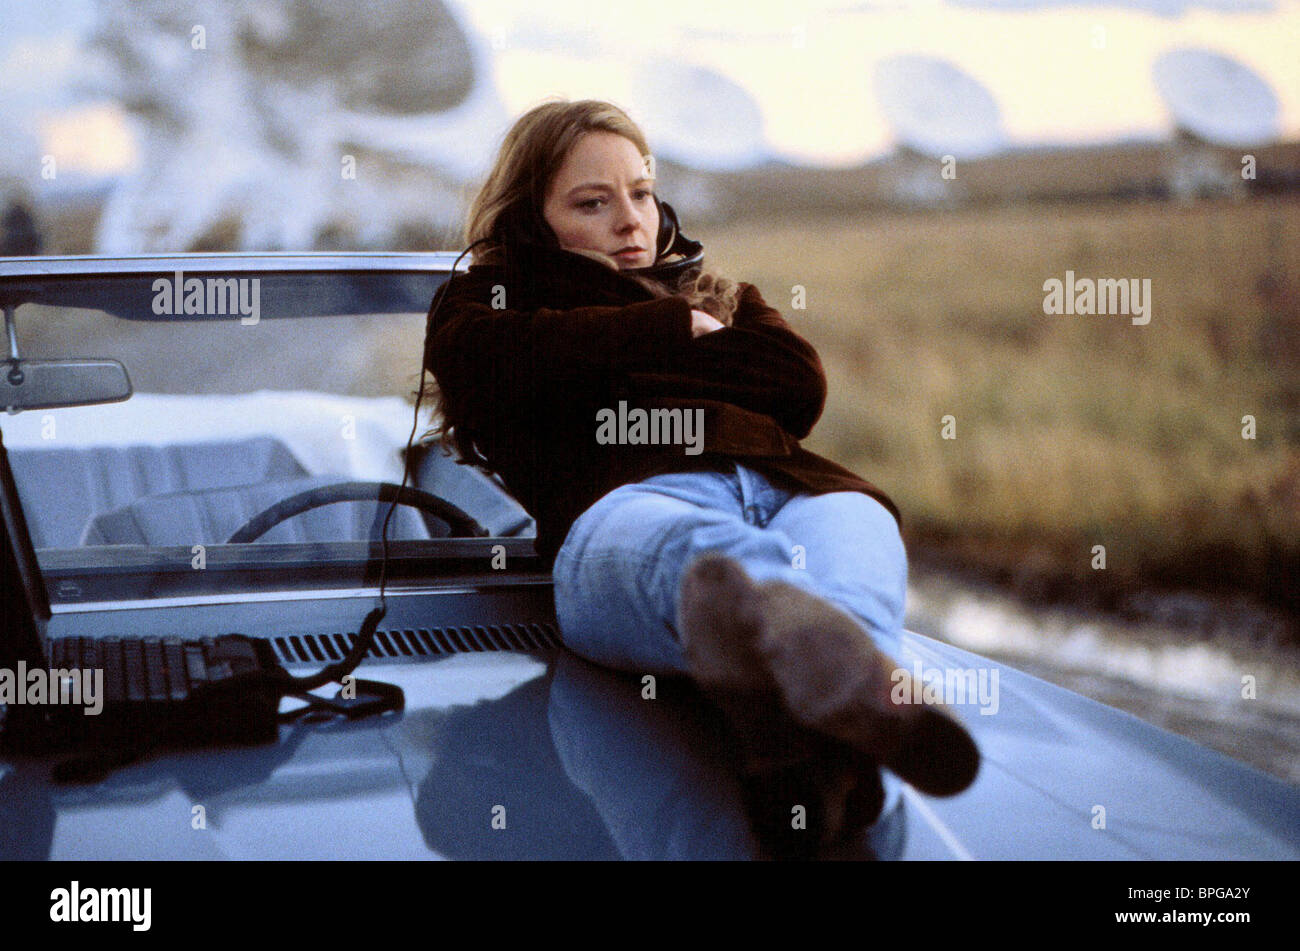 Jodie Foster Contact 1997 Stock Photo Alamy